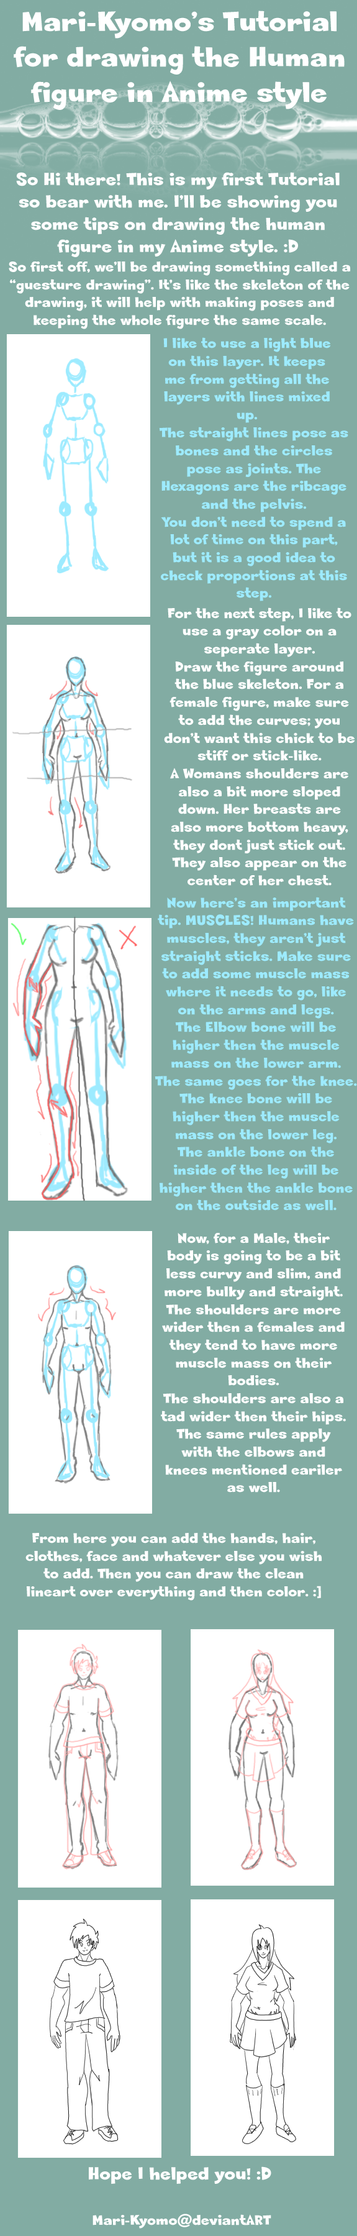 Basic Tutorial on drawing the Human figure by Mari-Kyomo